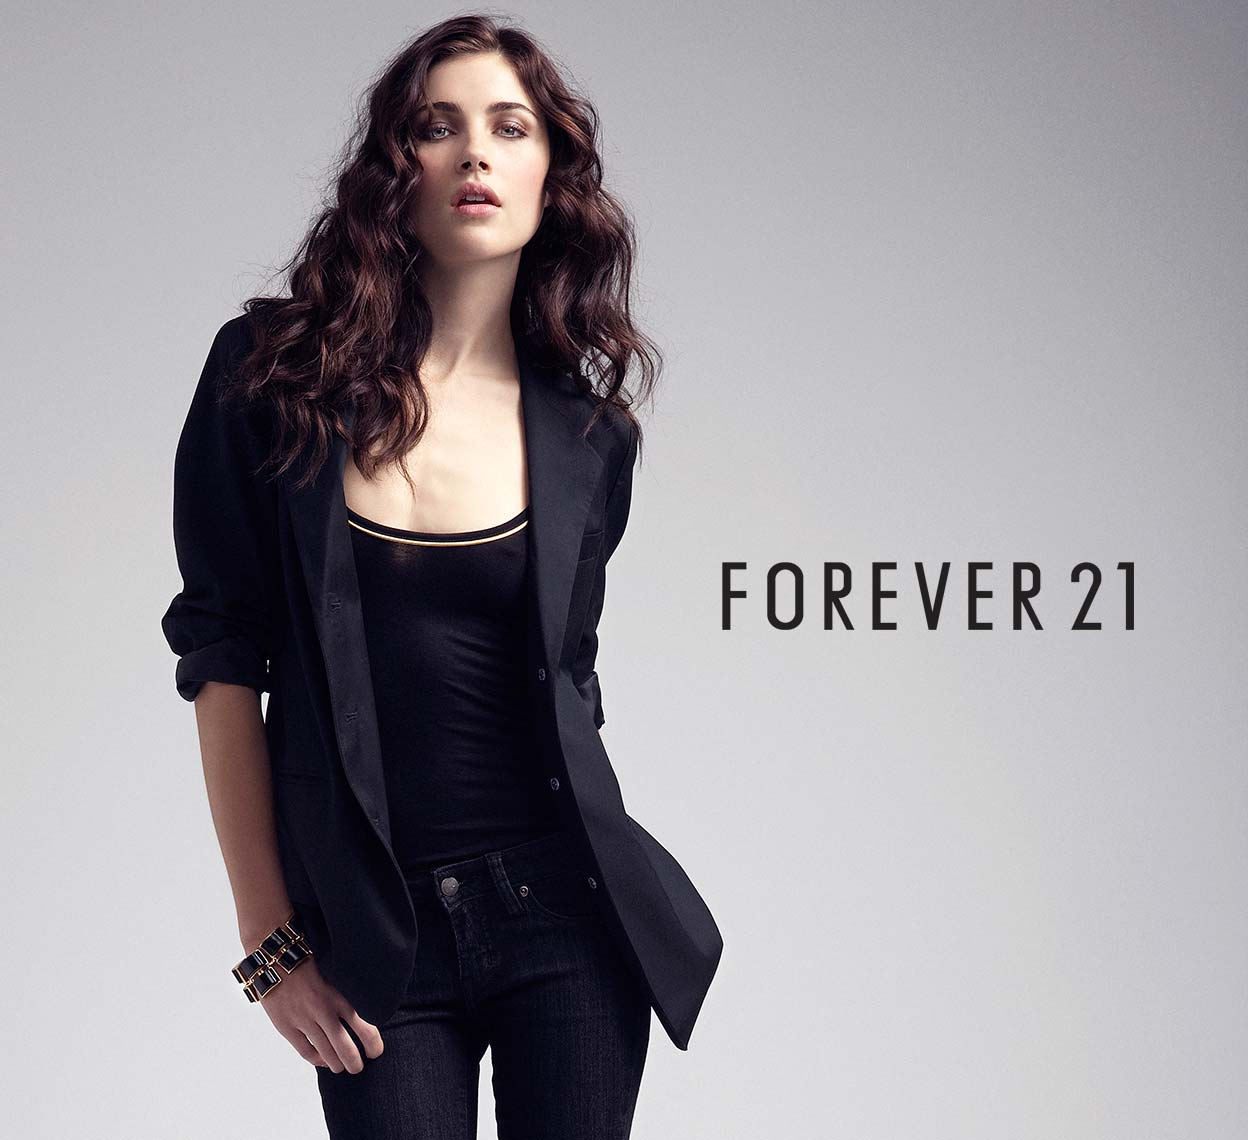 CHRIS-HUNT-FOREVER-21-we-love-author-of-this-piece